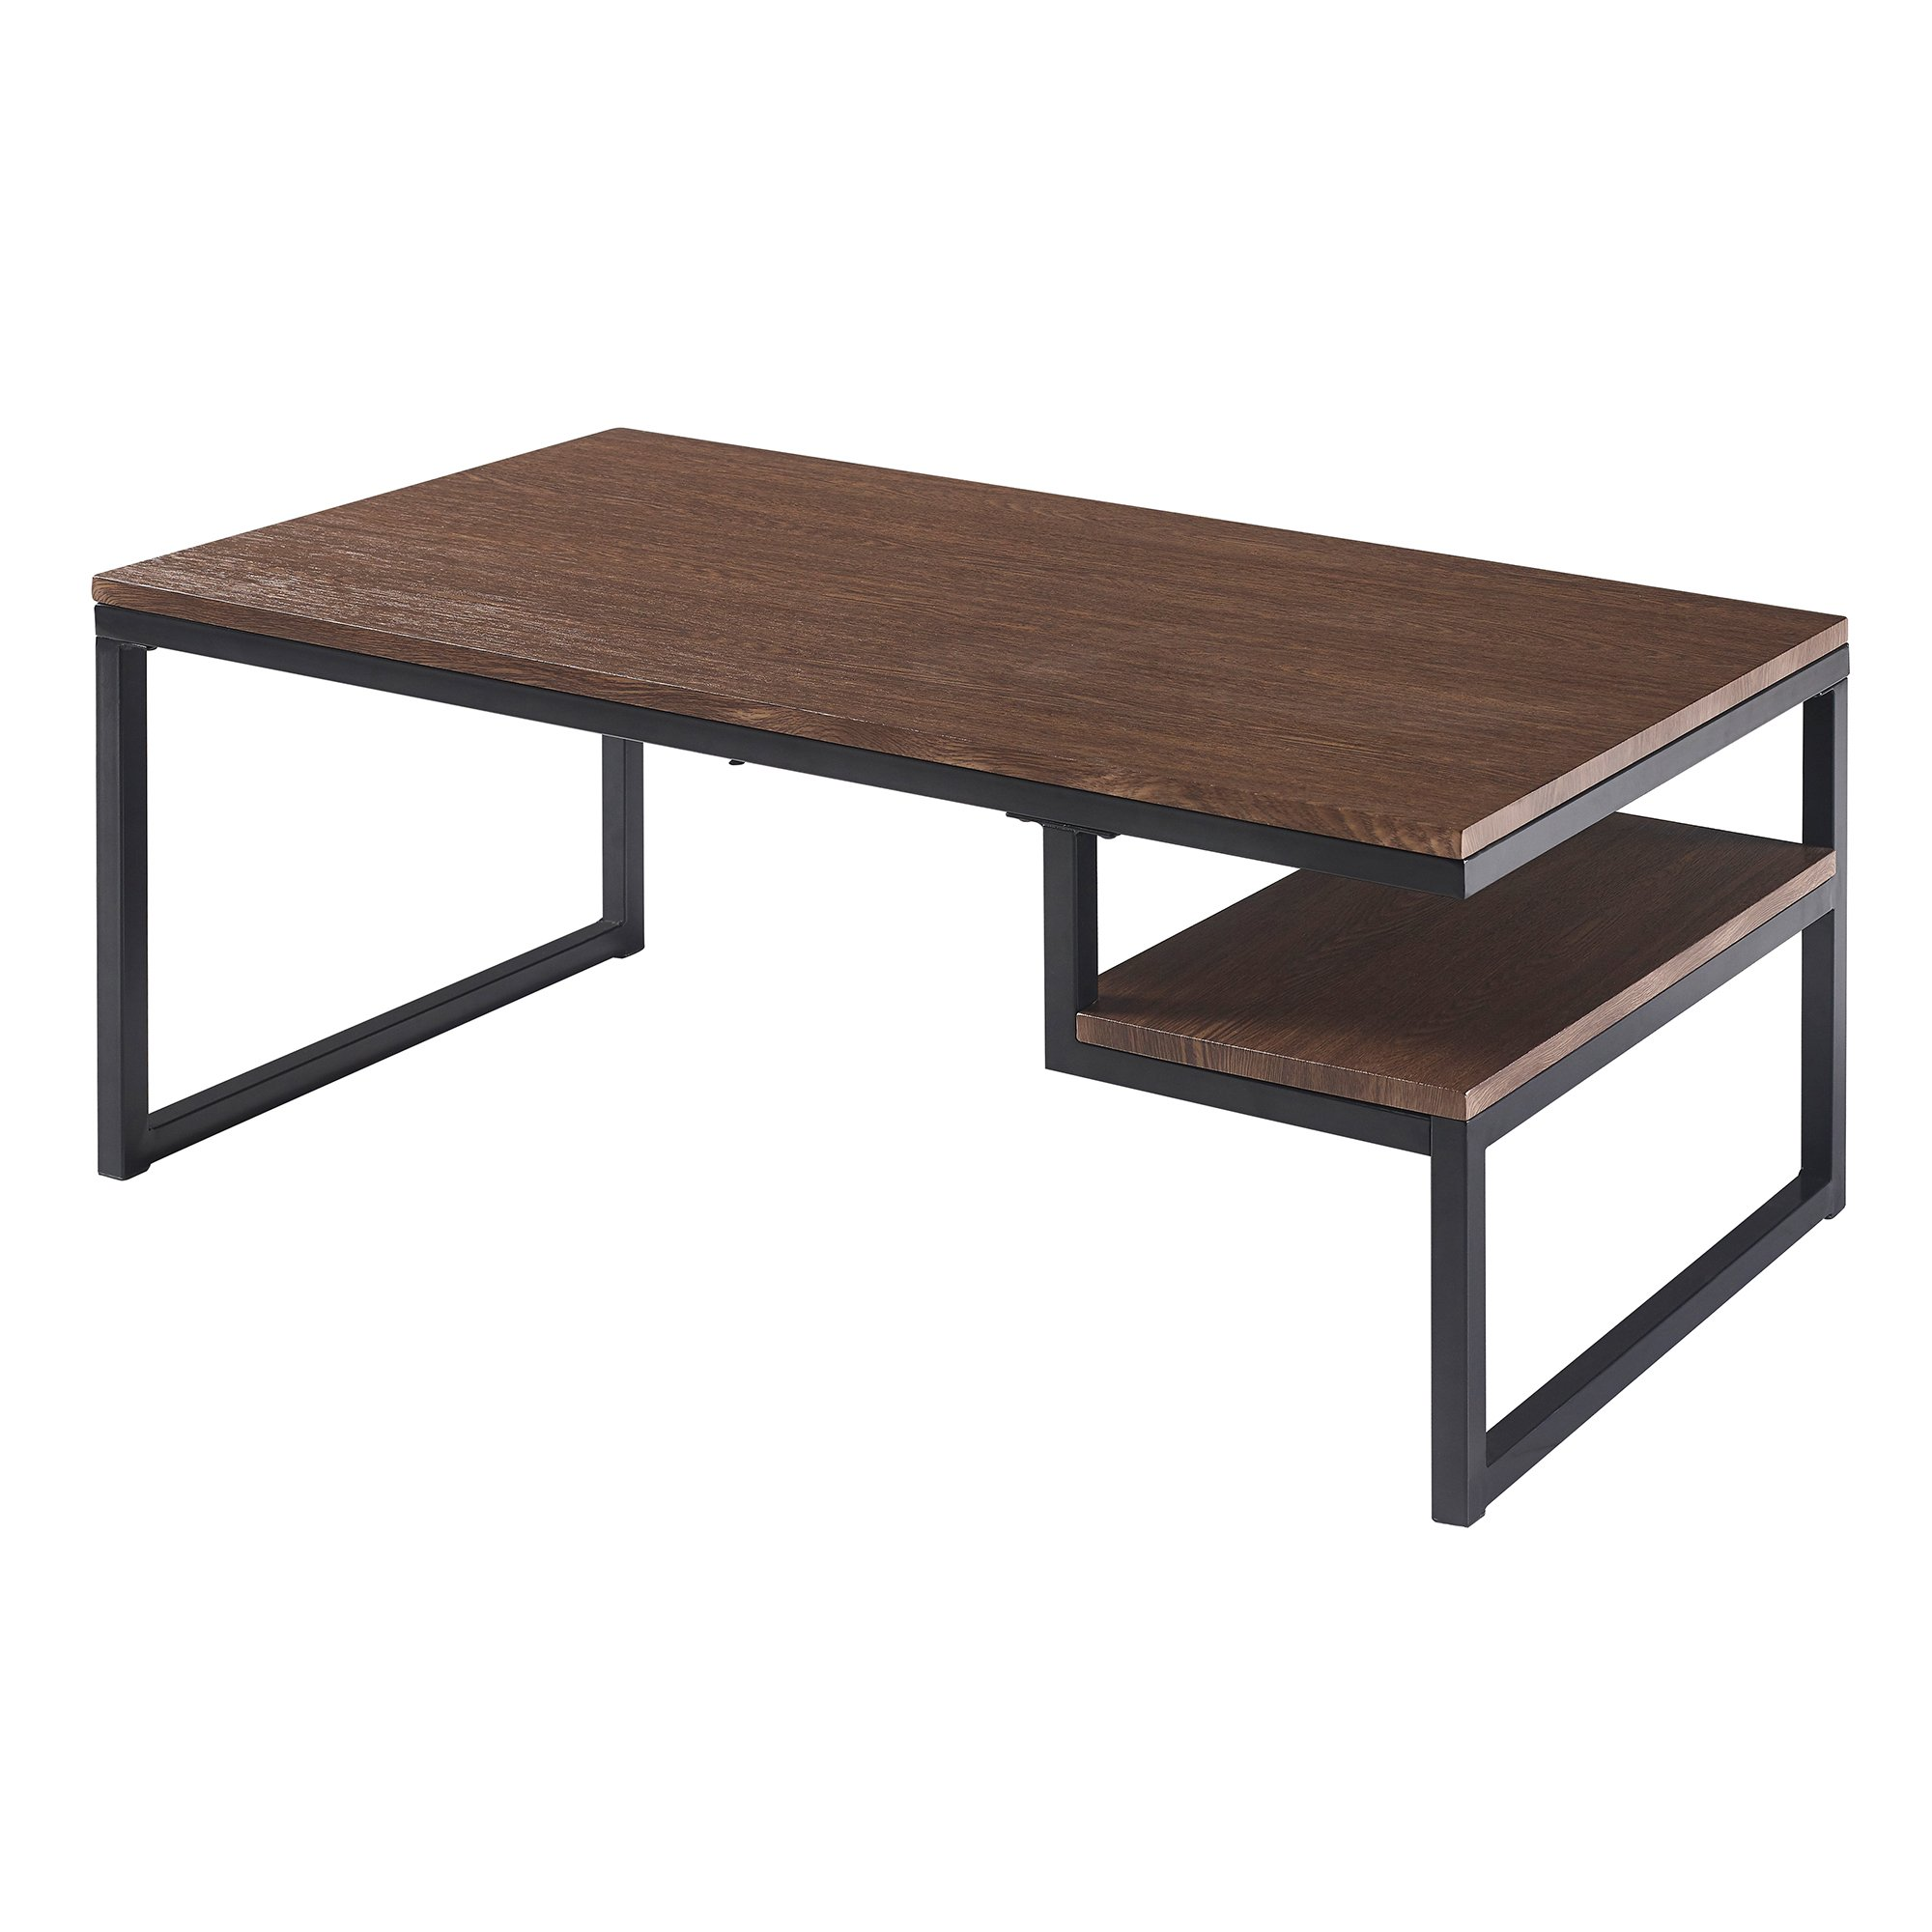 Versanora - Industriale Coffee Table - Walnut/Black